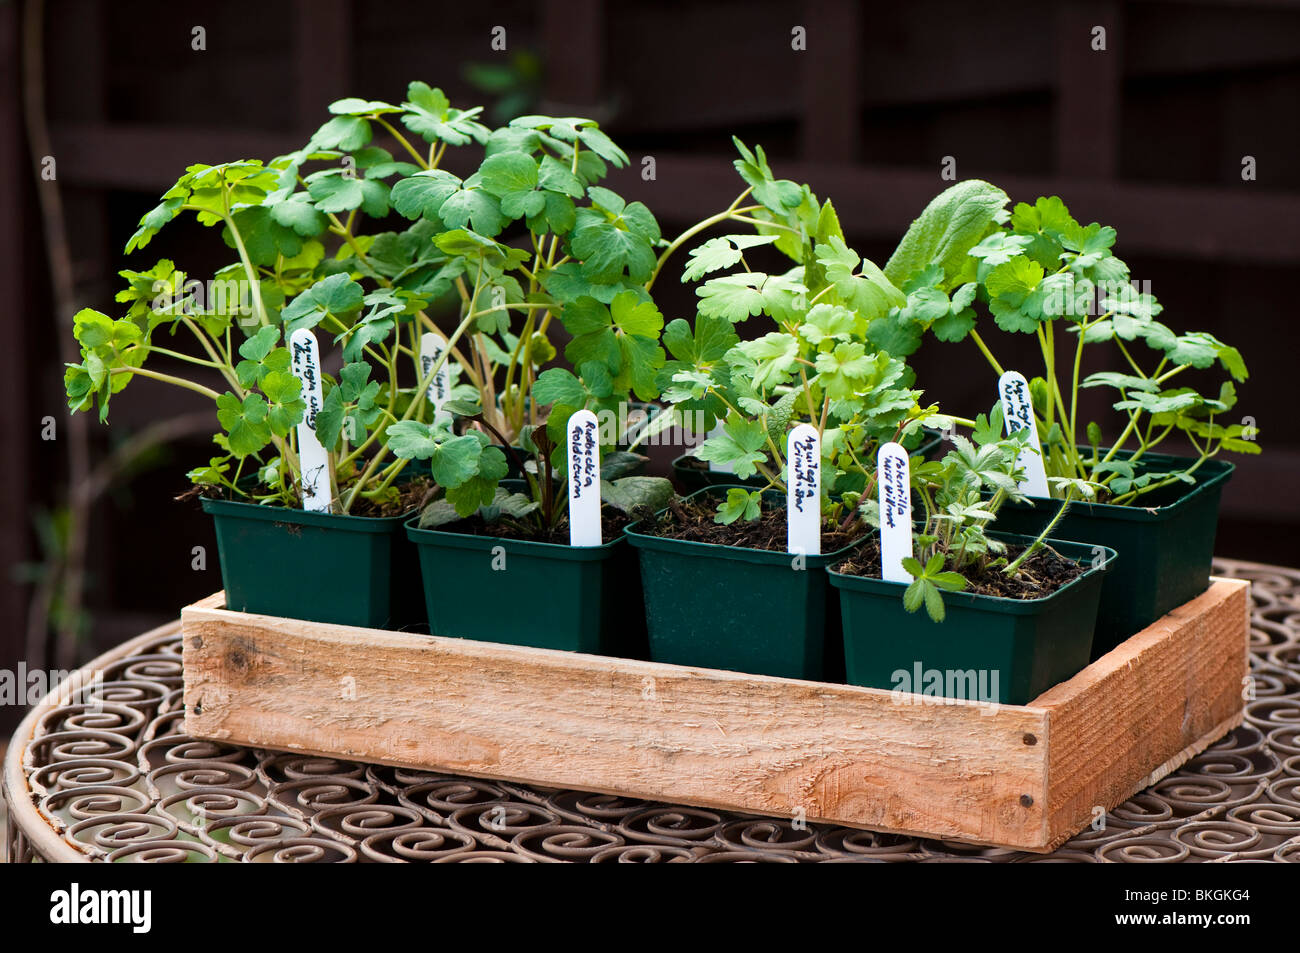 Selection of nursery grown herbaceous plants in pots in a wooden tray ready to plant out in the garden - Stock Image